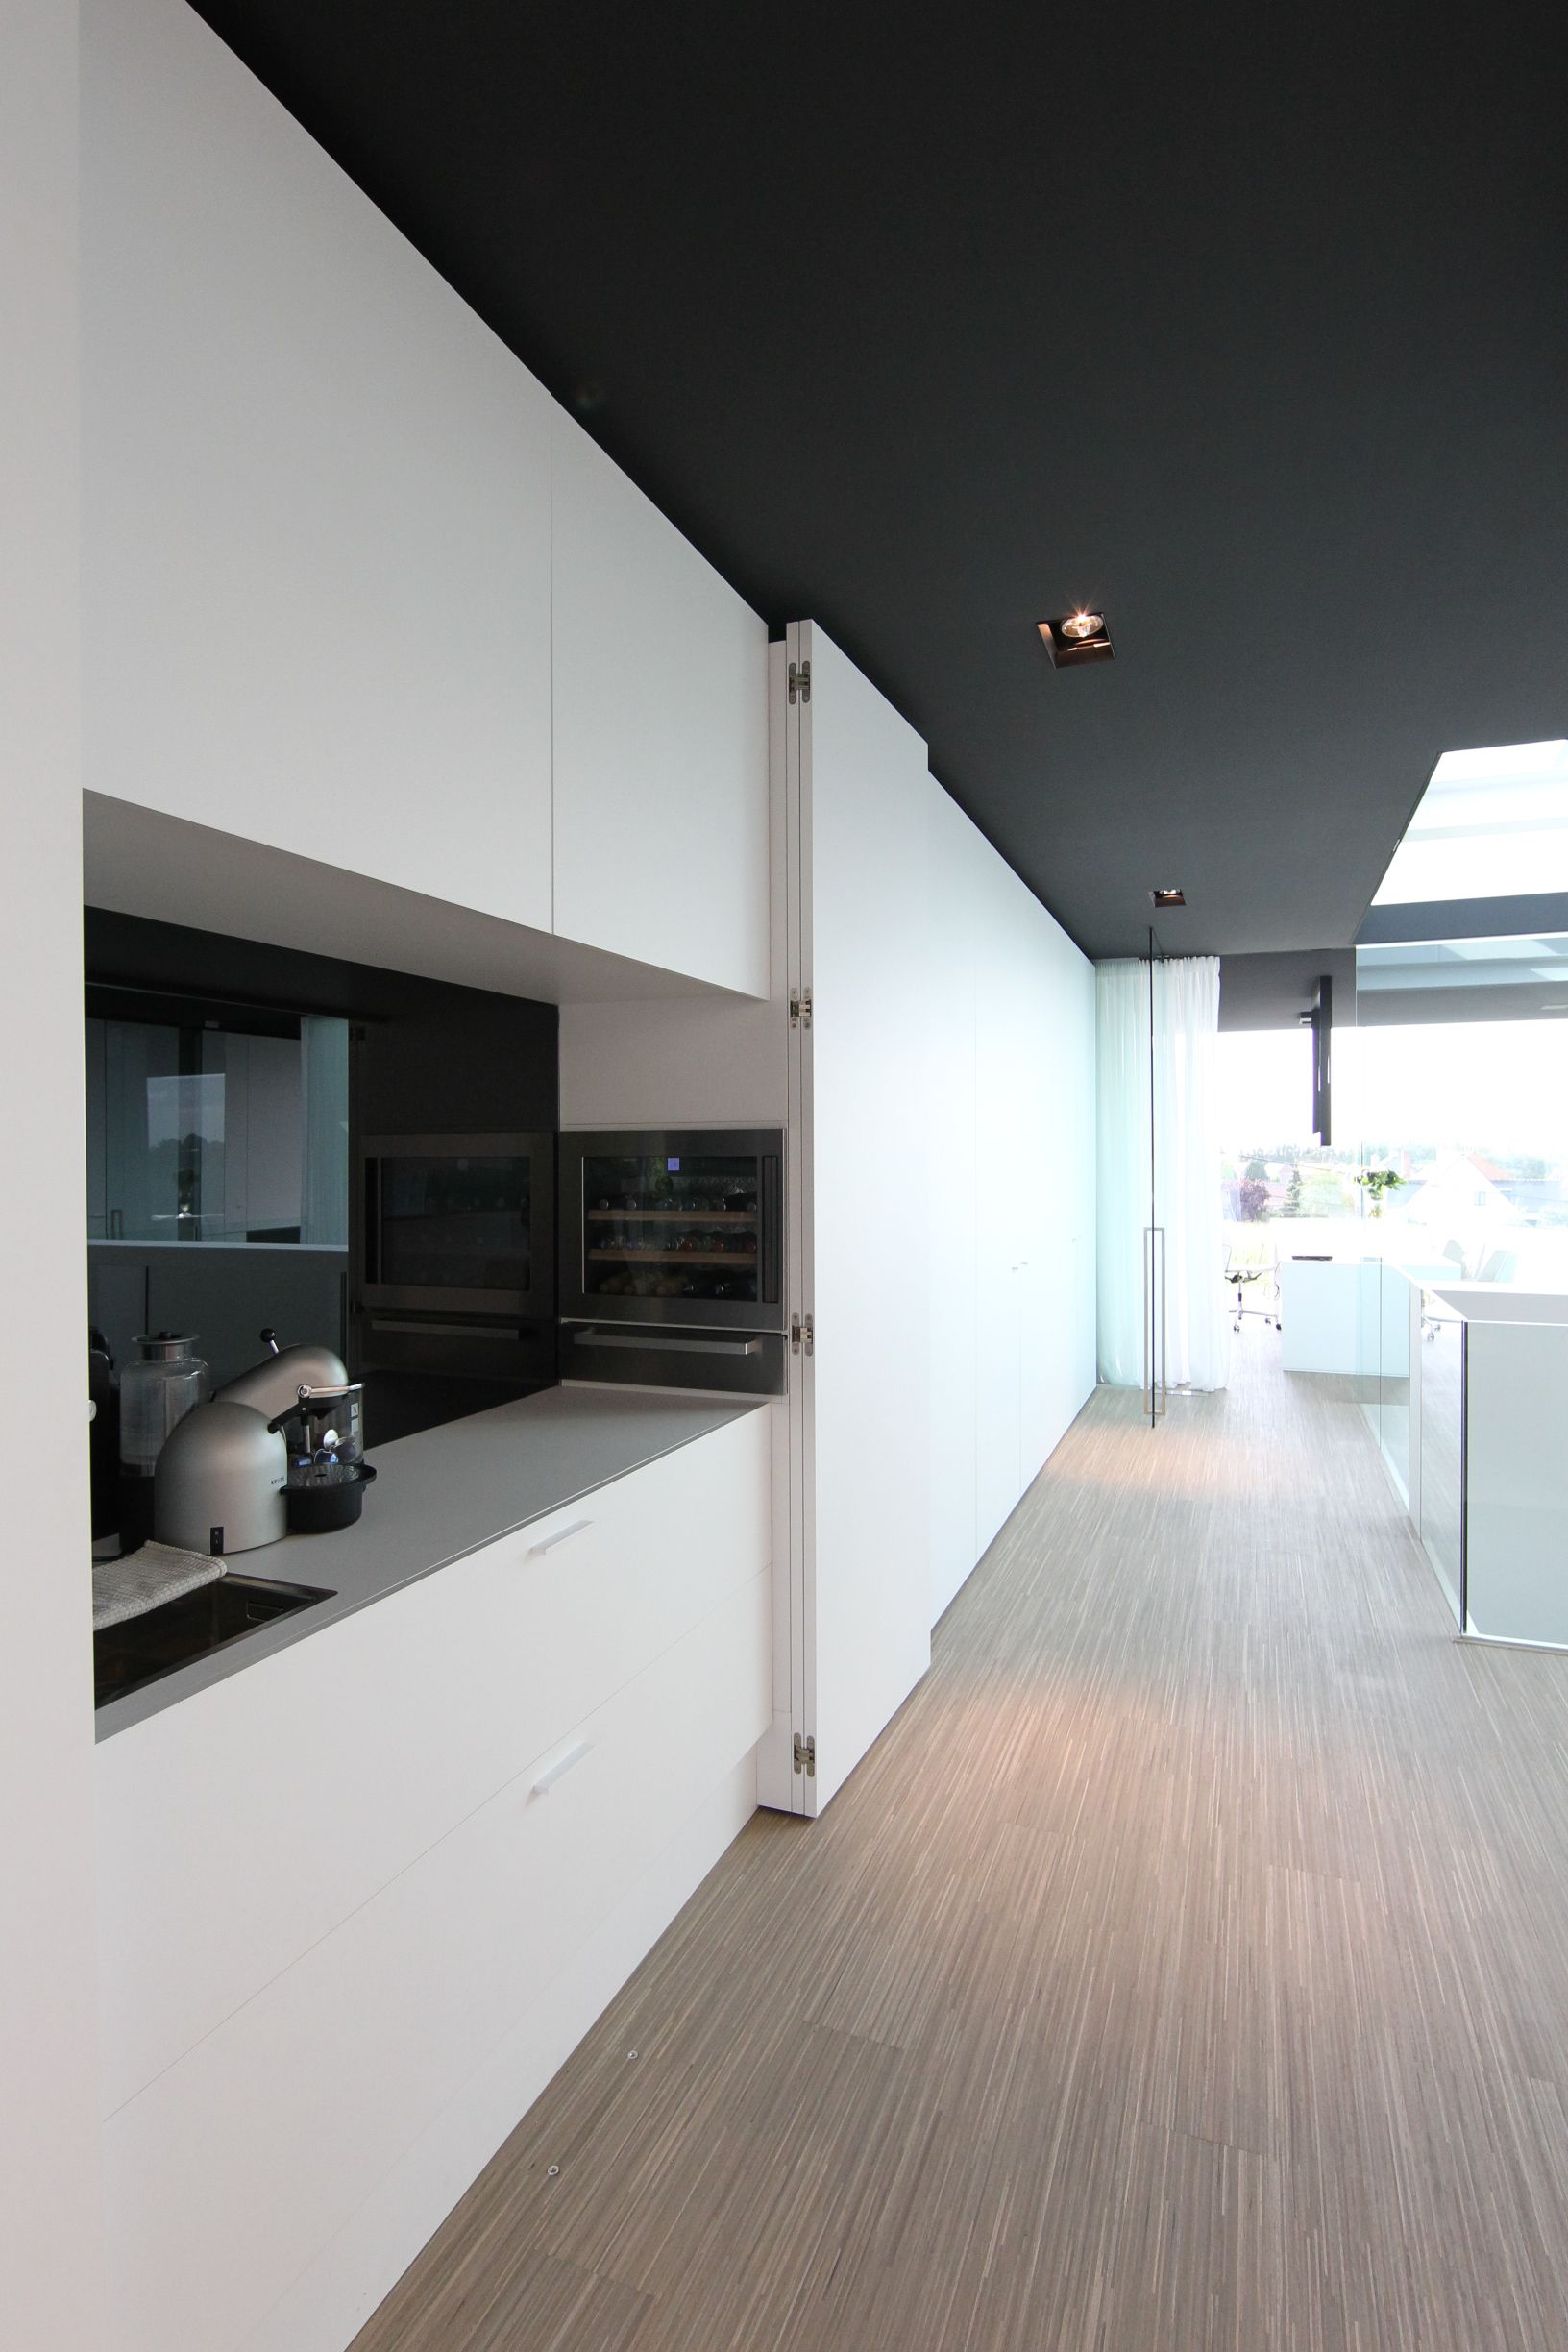 Office at Luxhome, with a hide away kitchen area with a